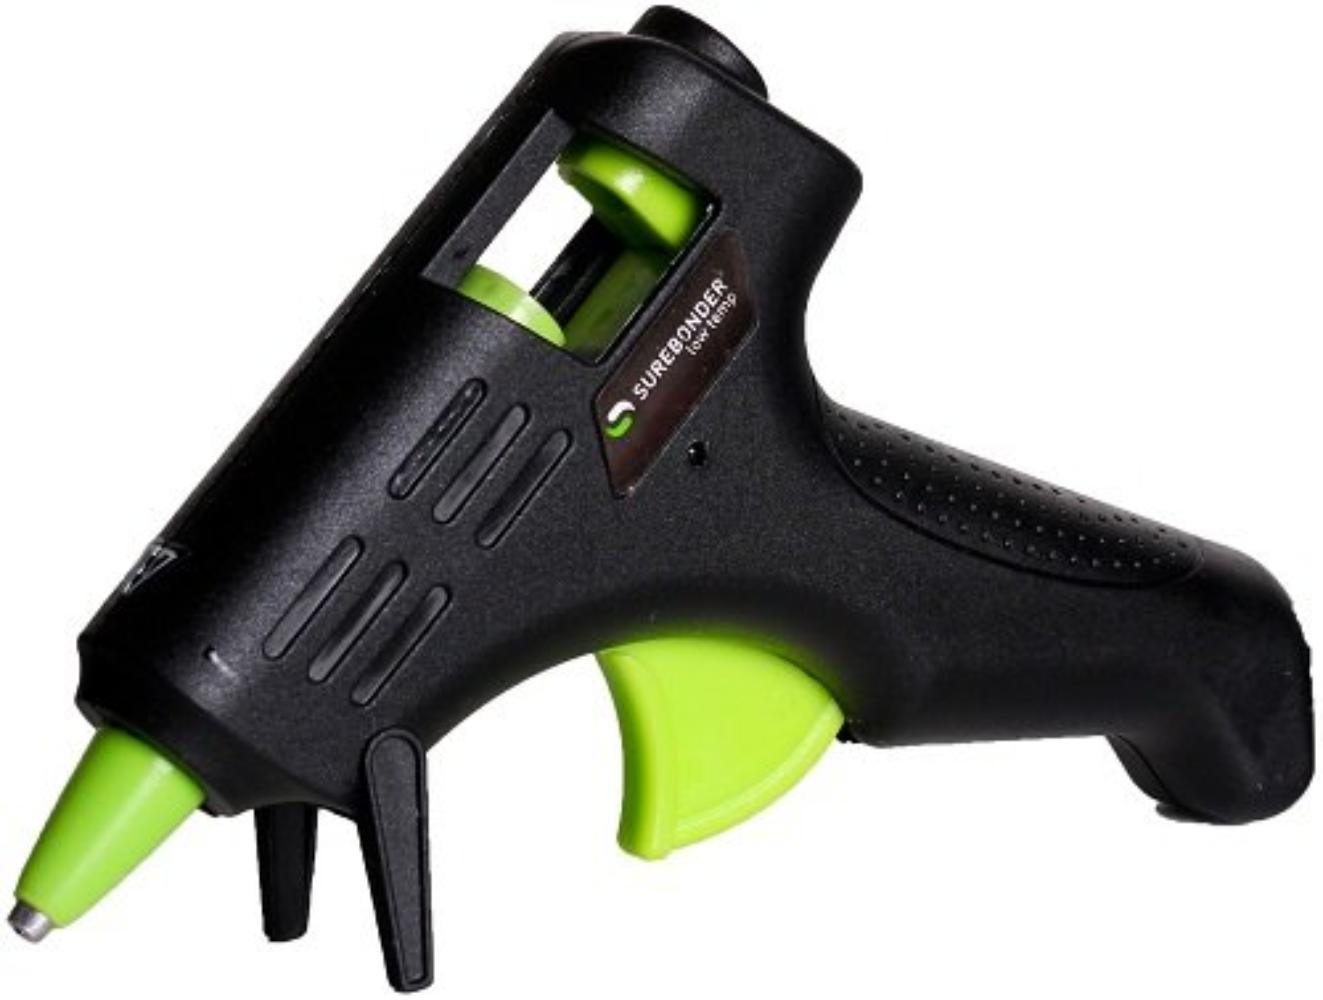 LT-160 Mini Low Temperature Glue Gun, 10-watt, Perfect for crafts, floral  and do it yourself projects By Surebonder